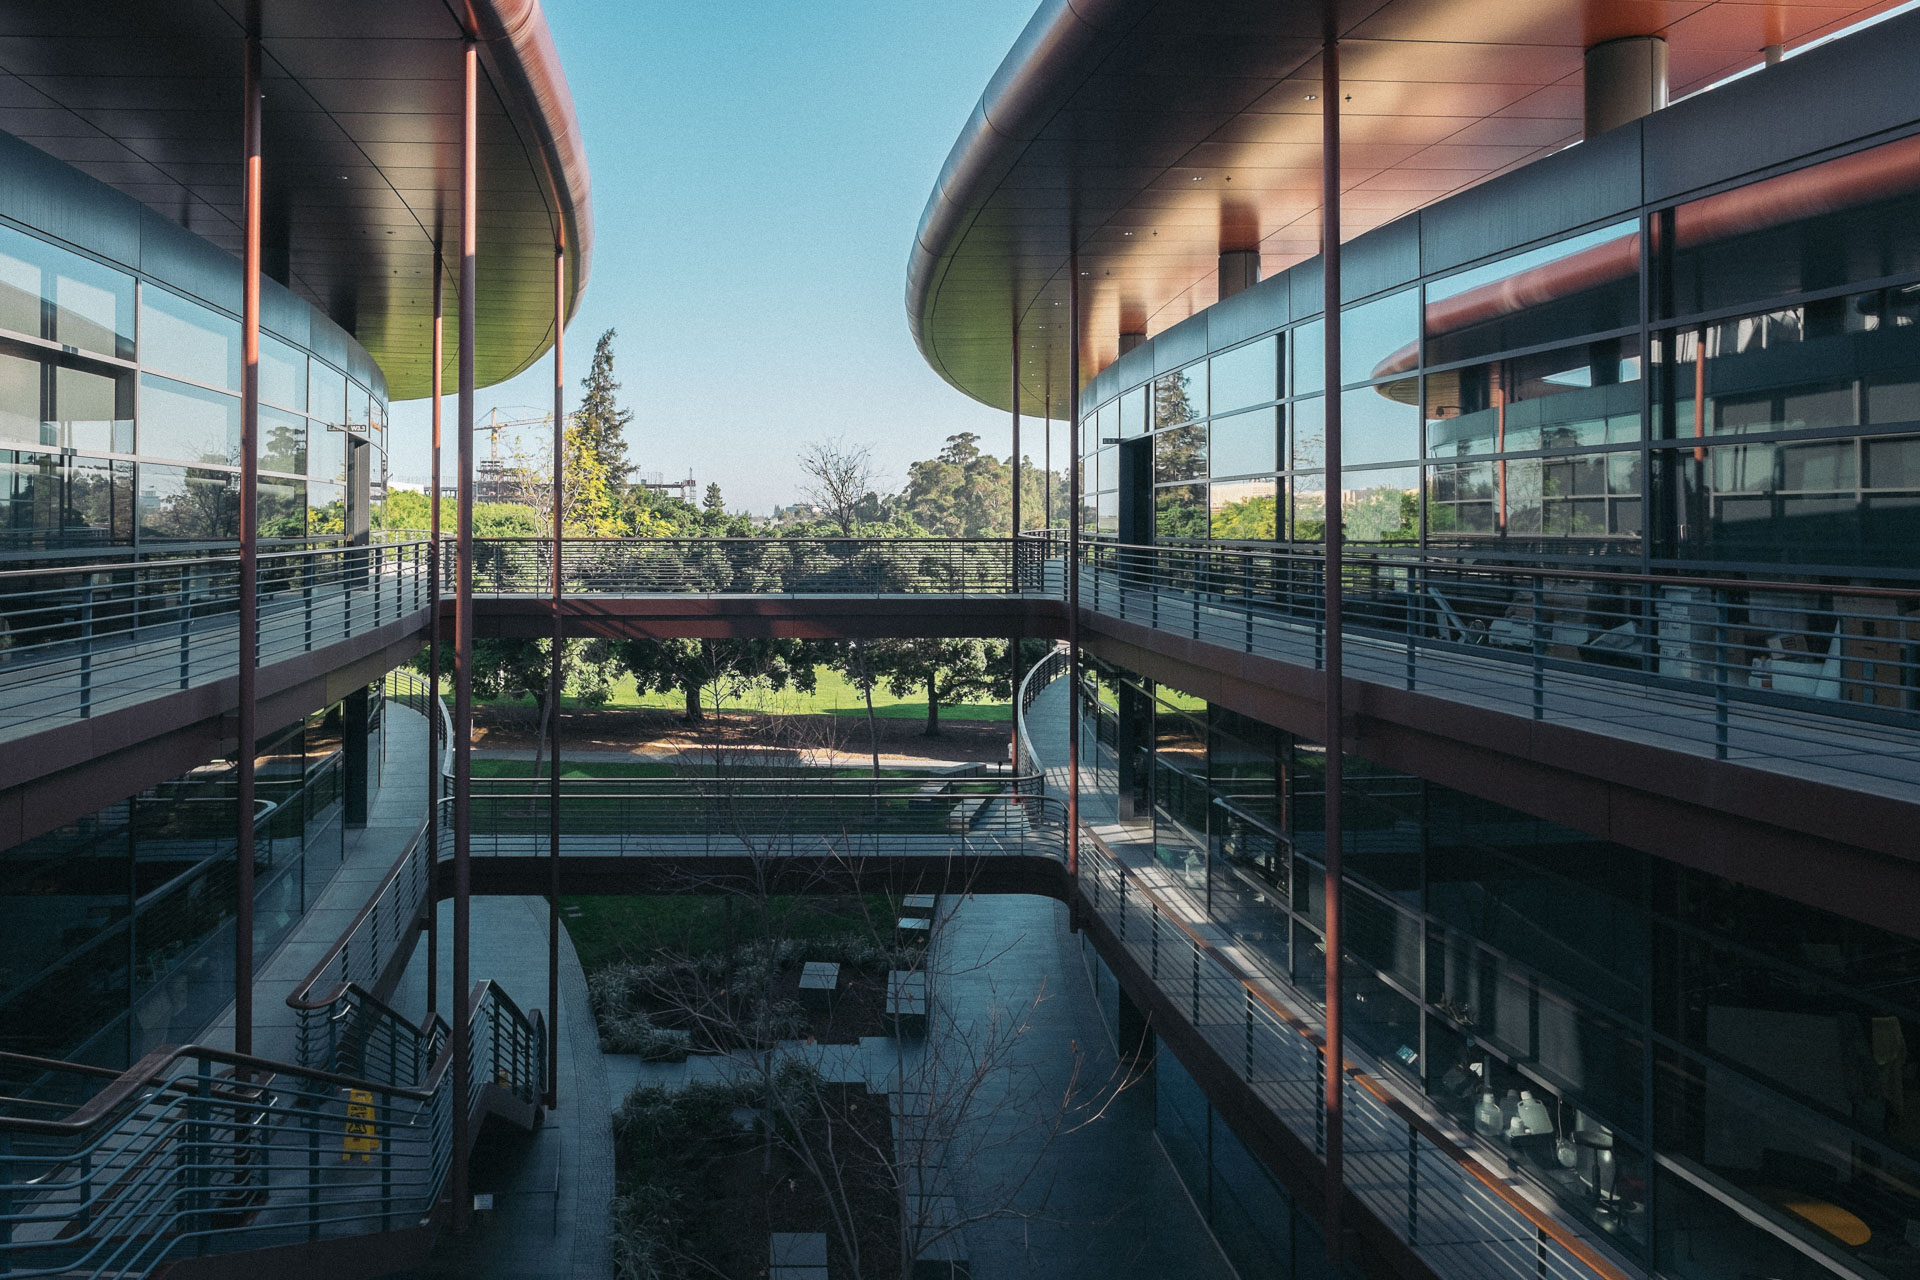 James H. Clark Center Biological Scienes, Stanford